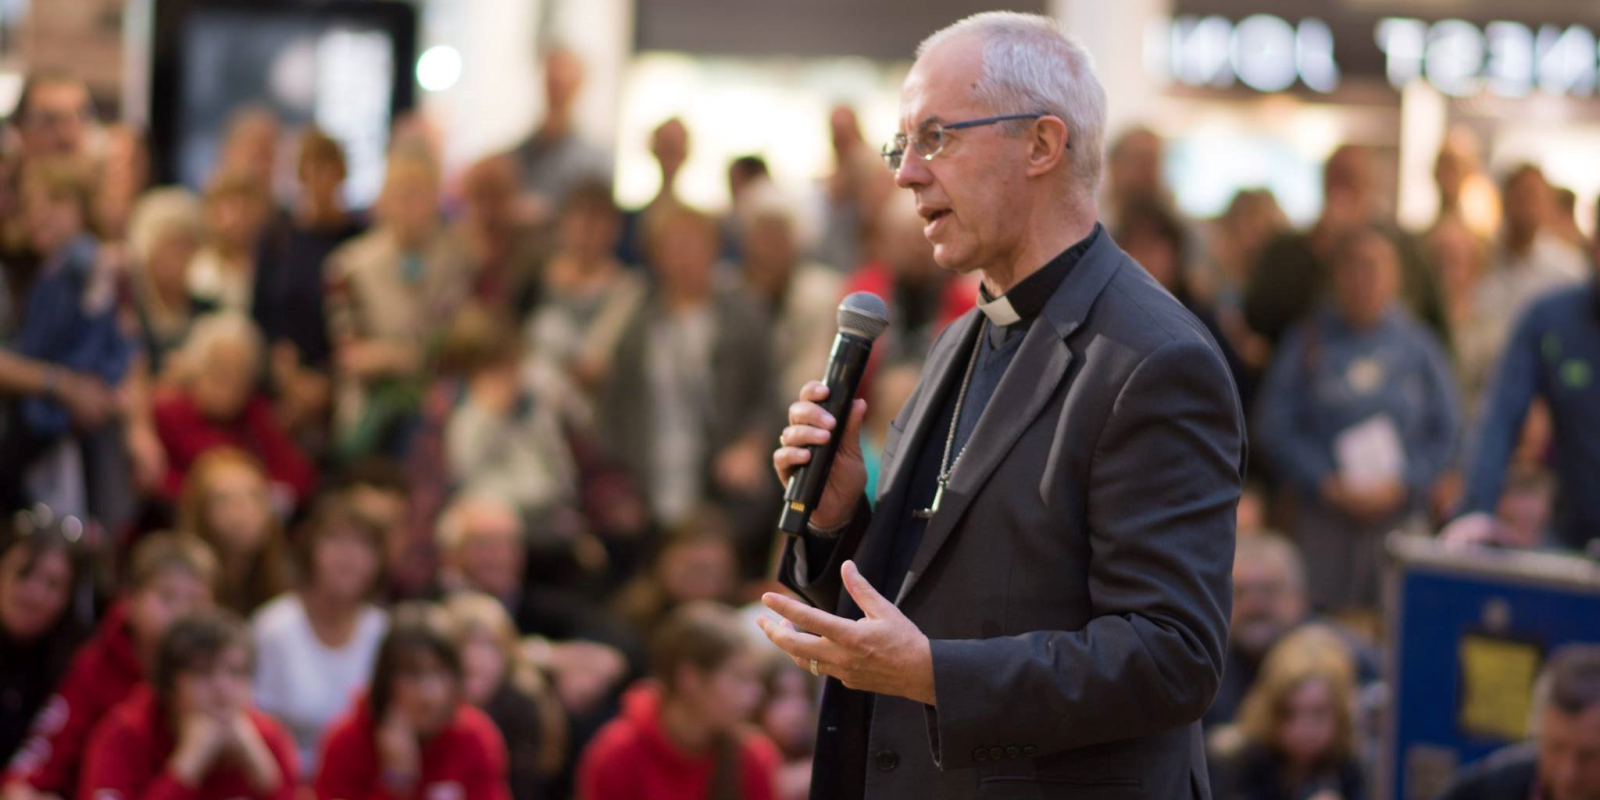 Justin Welby speaking to crowds at the Merry Hill shopping centre in Dudley